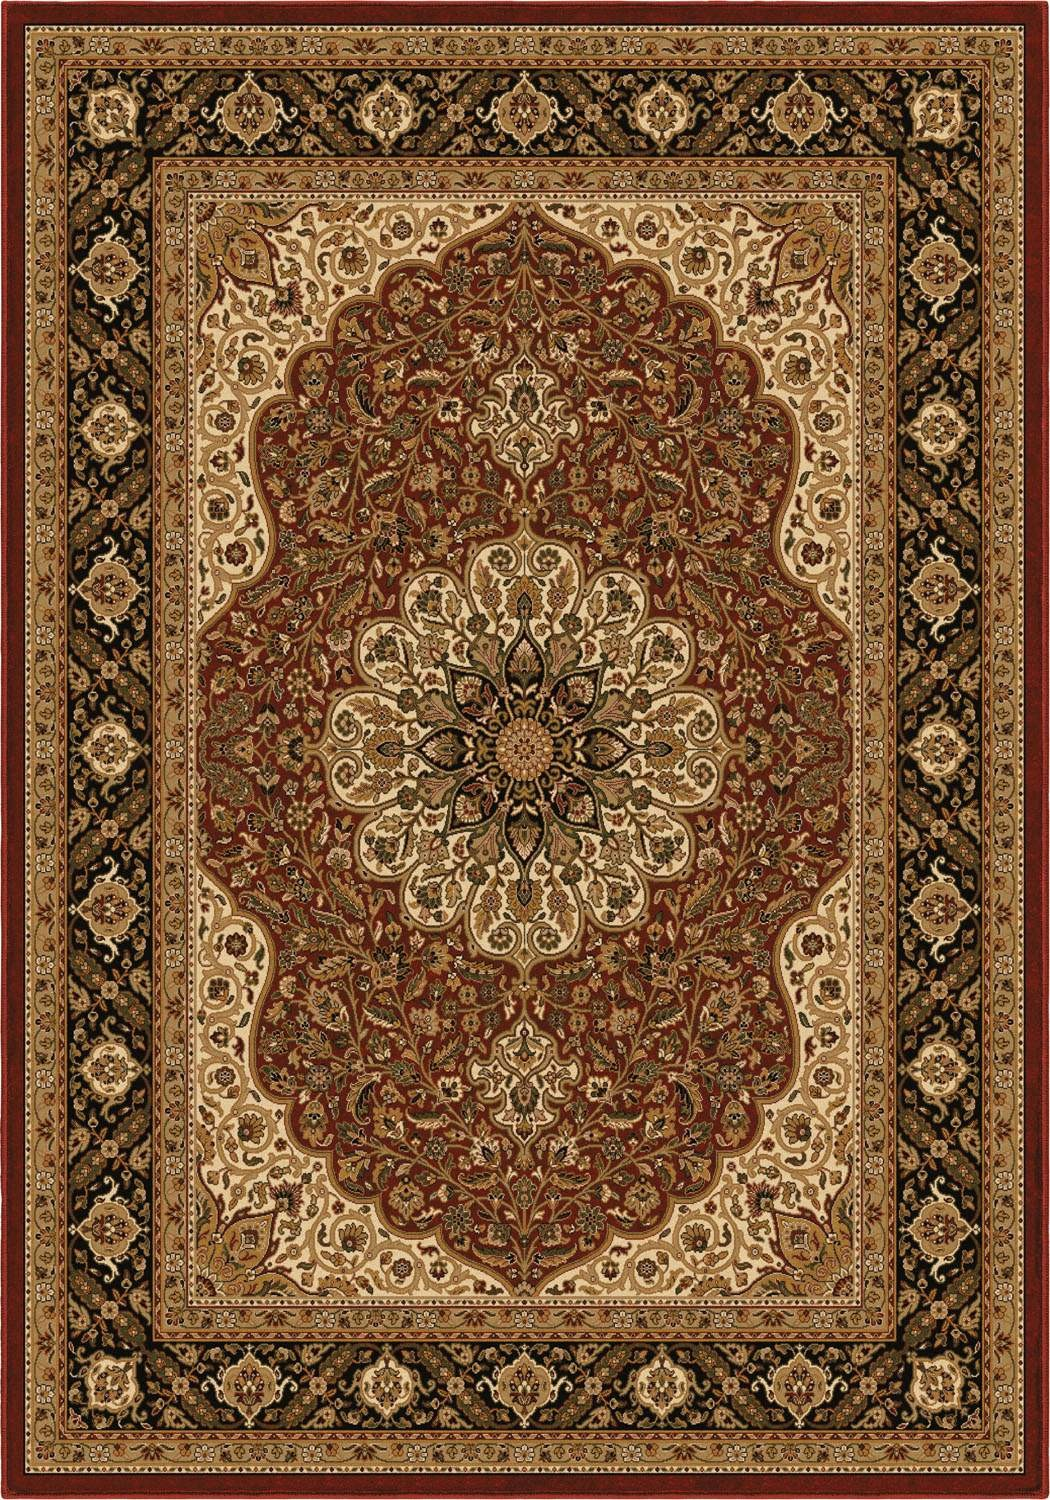 American Heirloom 1229 Osteen rug with floral pattern by orian rugs for floor decor ideas